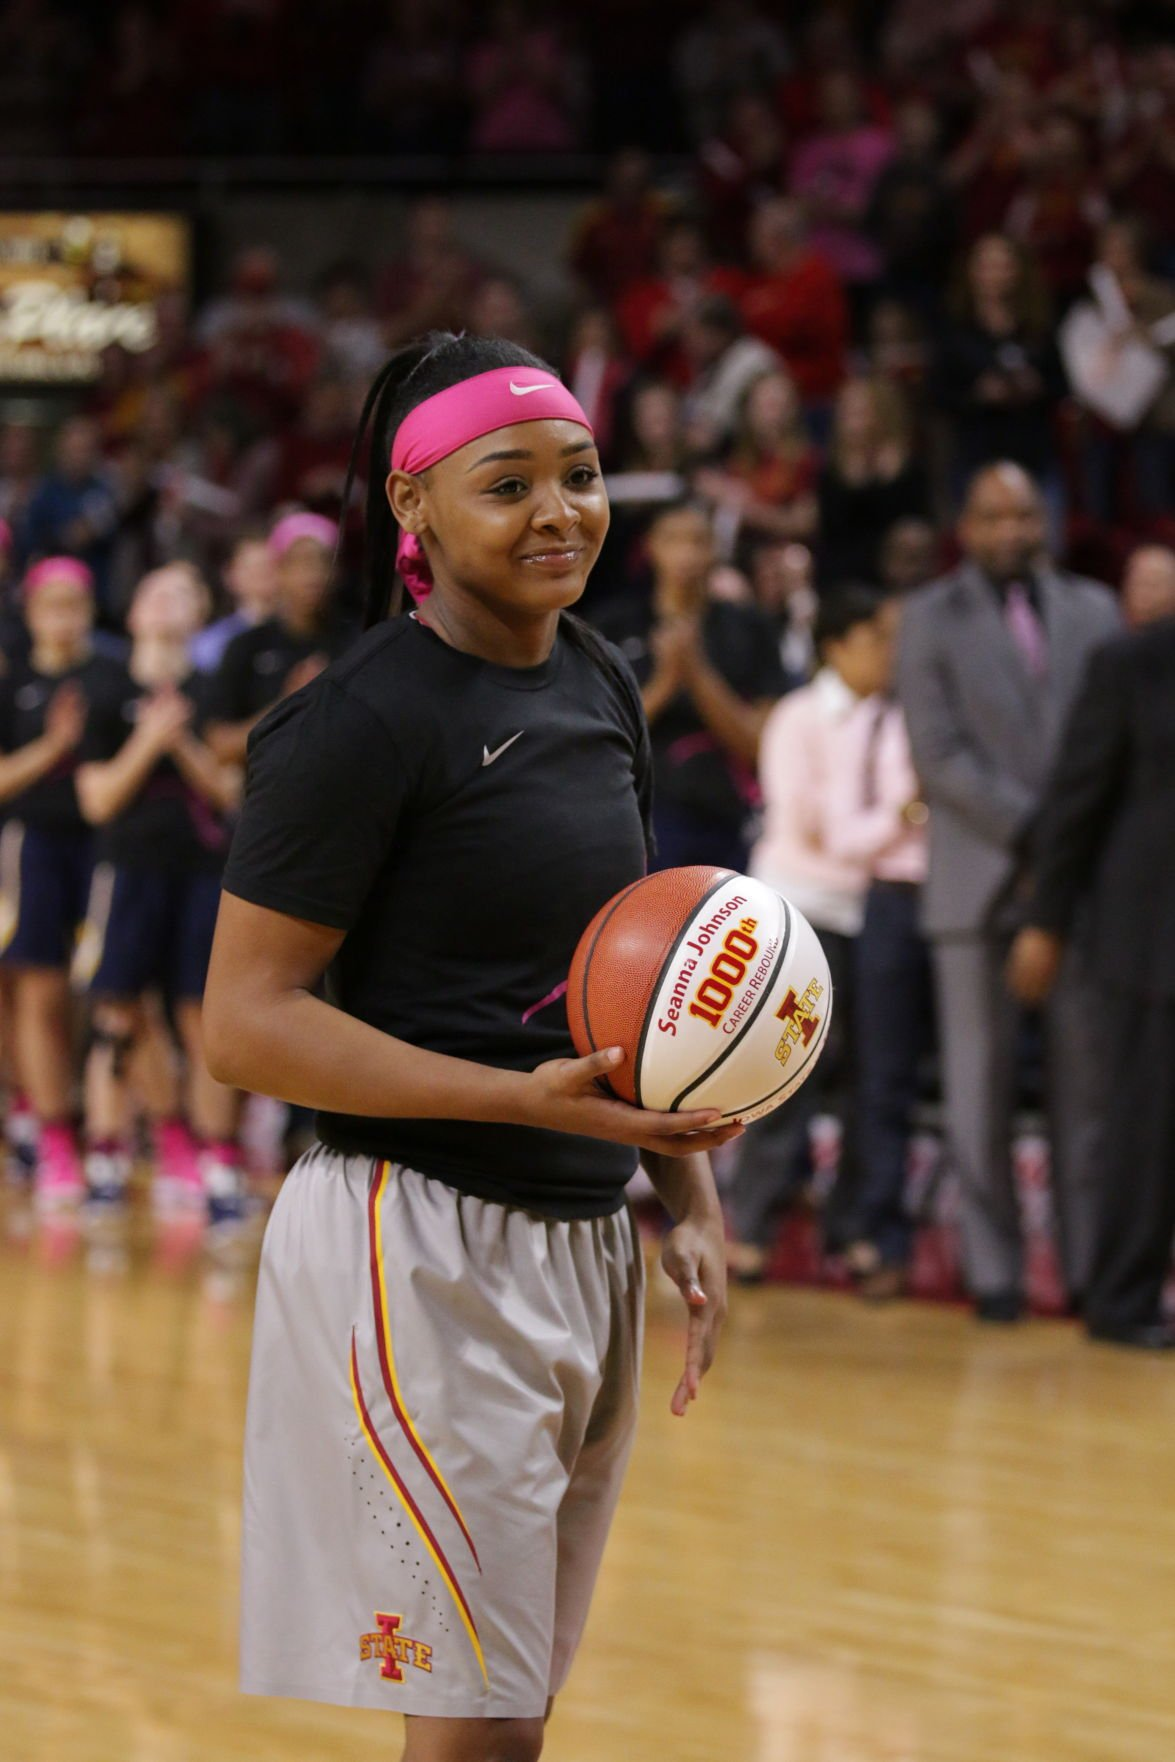 iowa state prepared for emotional senior night and pivotal game